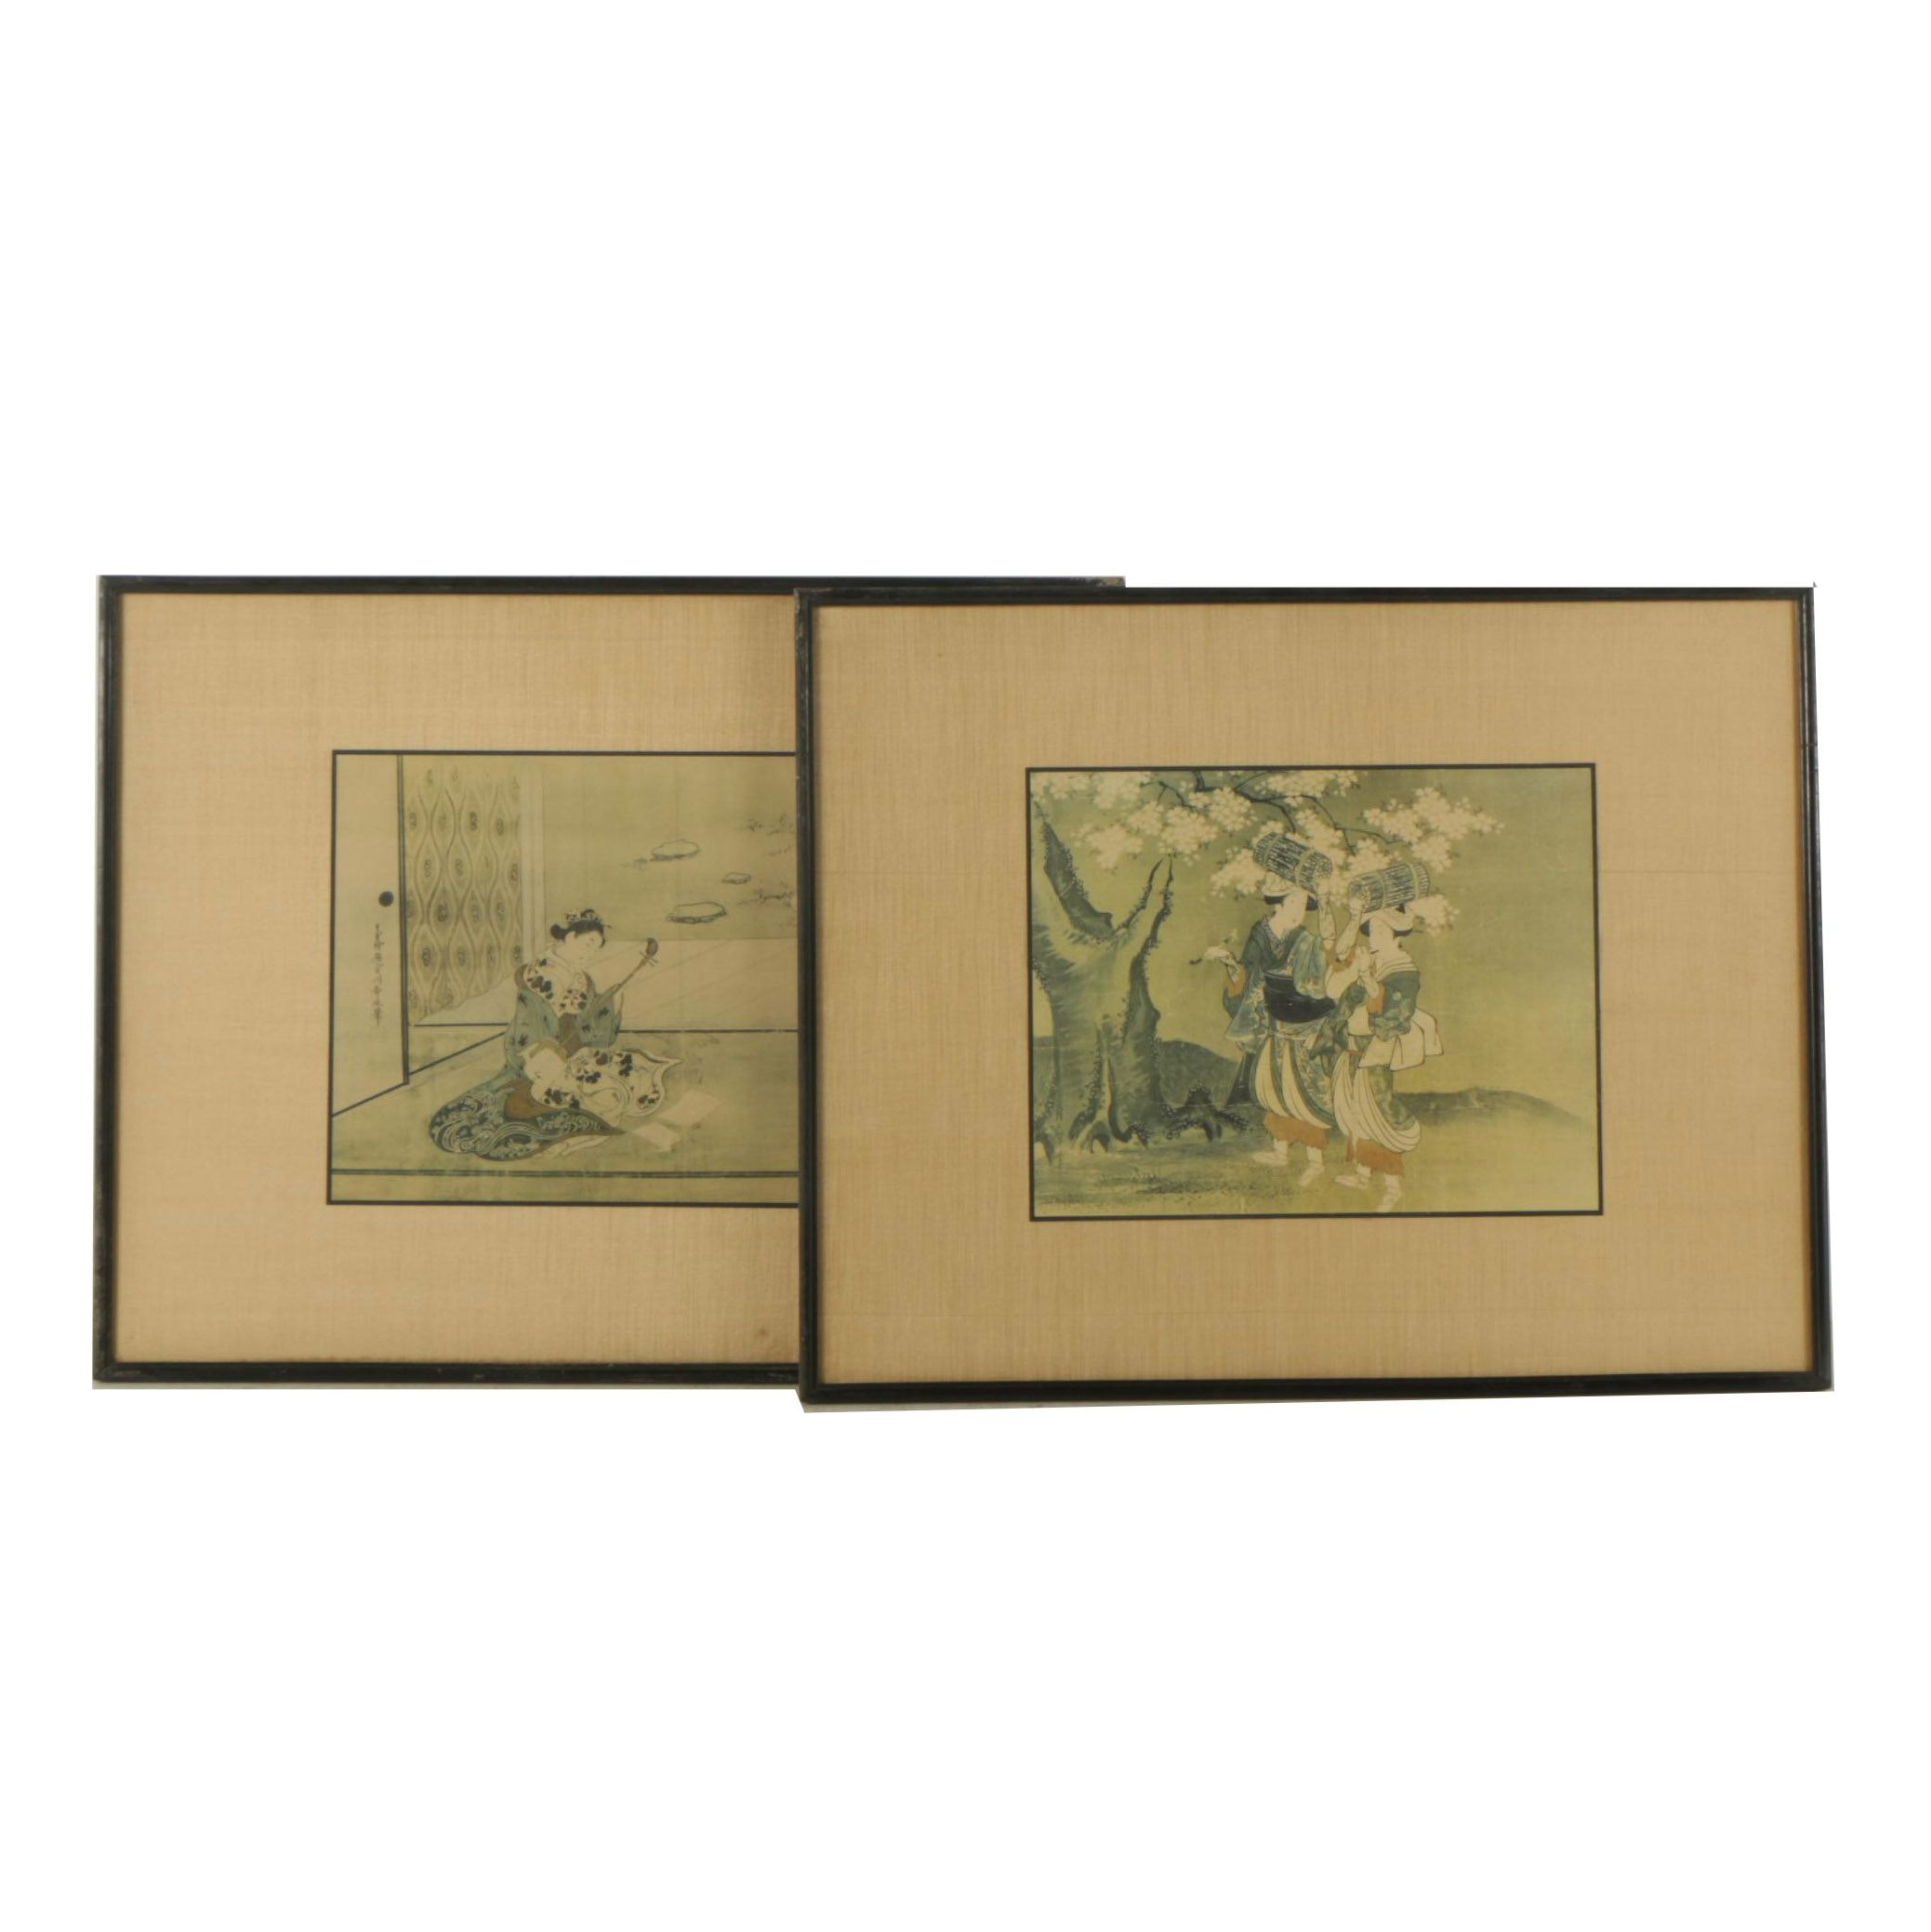 Collograph Prints Mounted to Silk After Edo Period Japanese Woodblock Prints